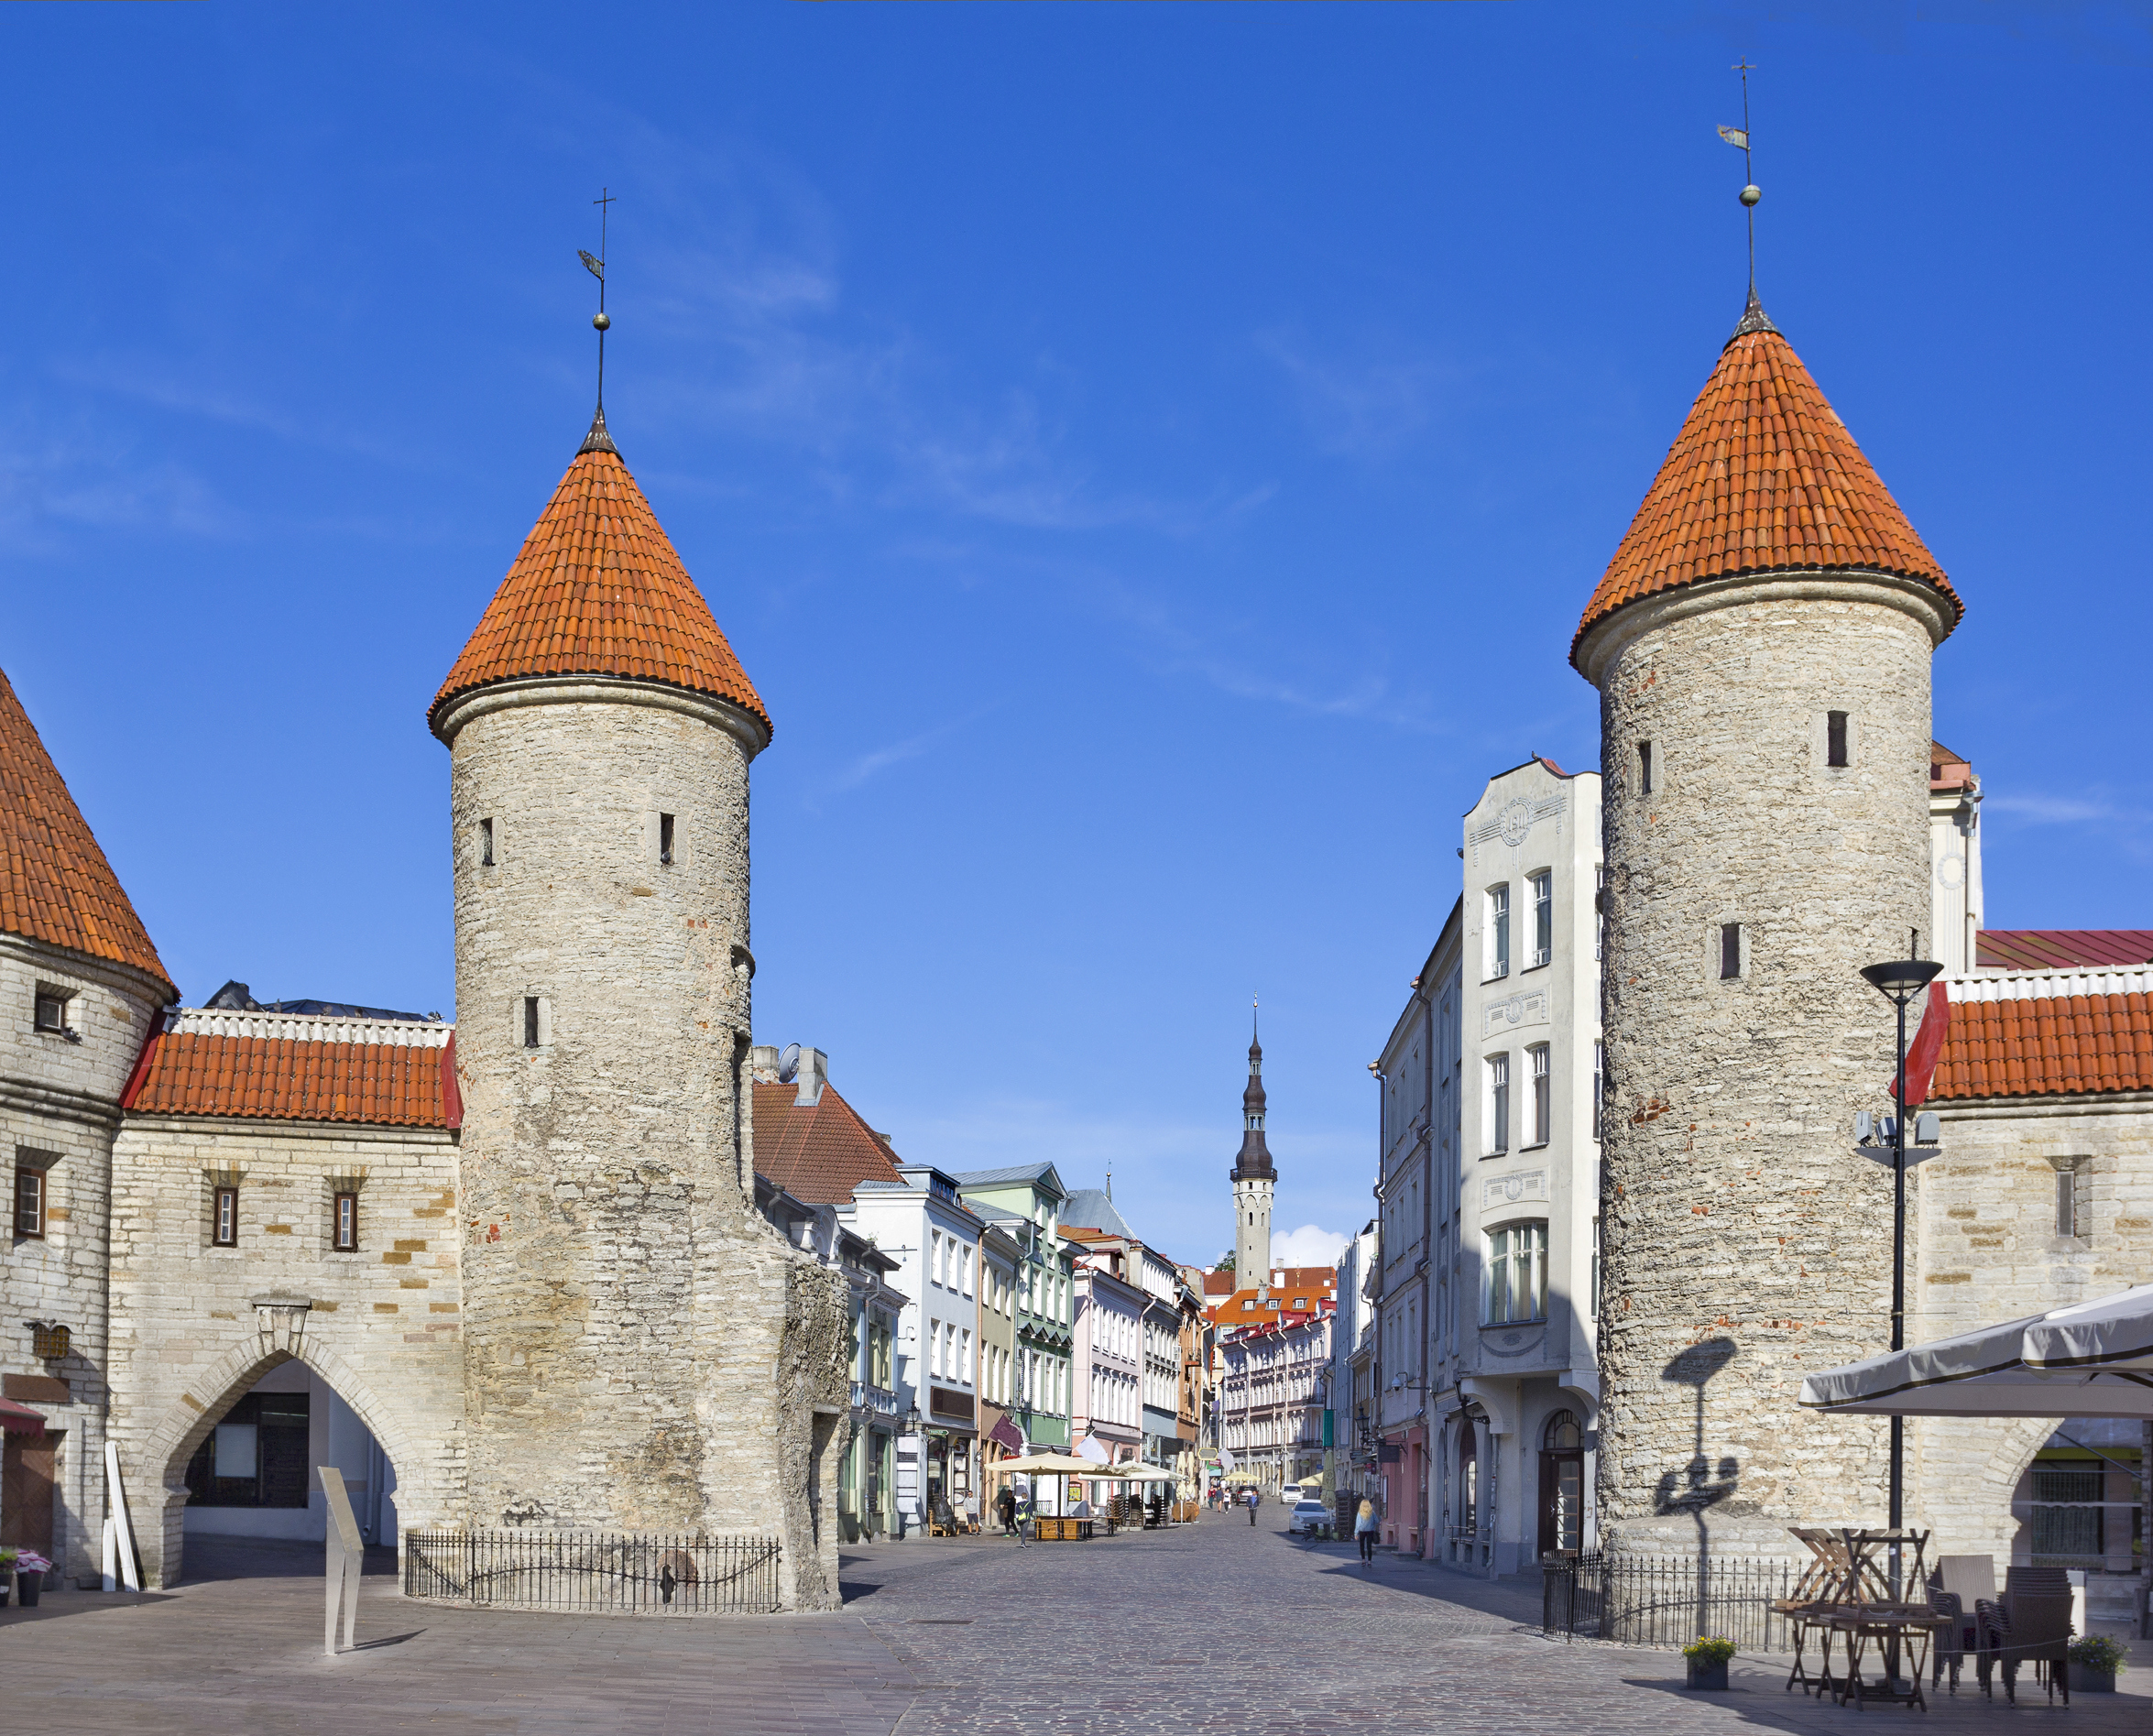 View of old Tallinn through medieval Viru gate with towers, Estonia